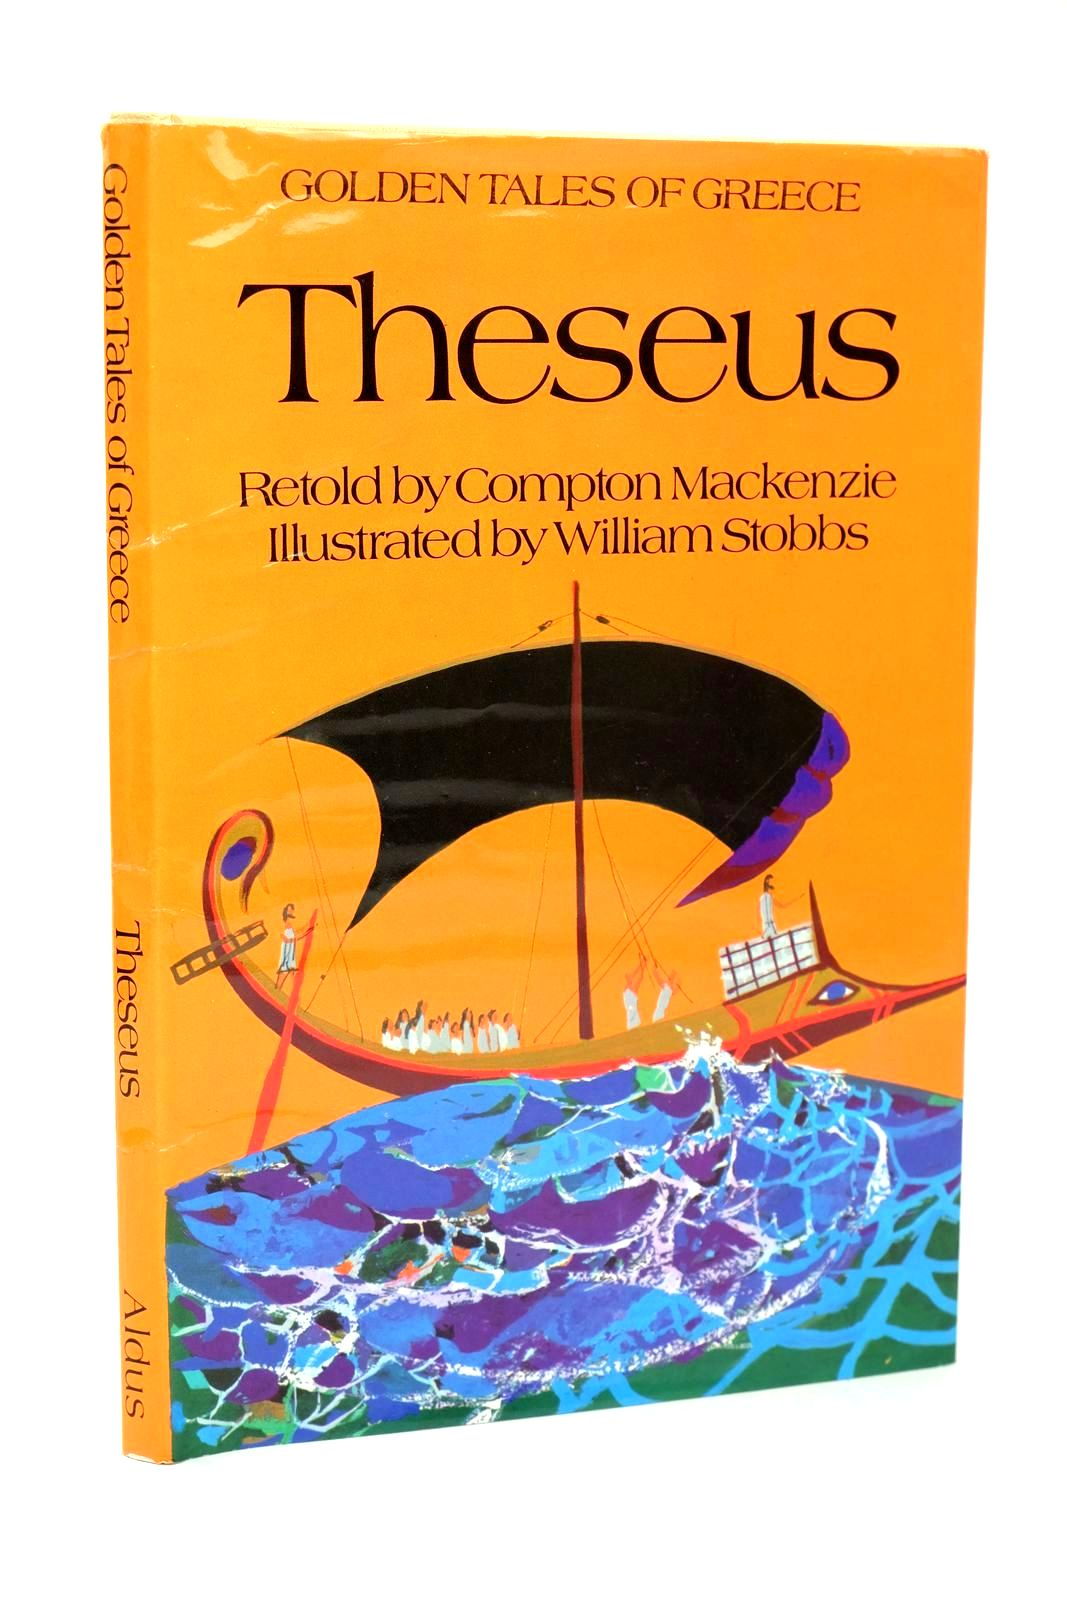 Photo of THESEUS - GOLDEN TALES OF GREECE- Stock Number: 1318527